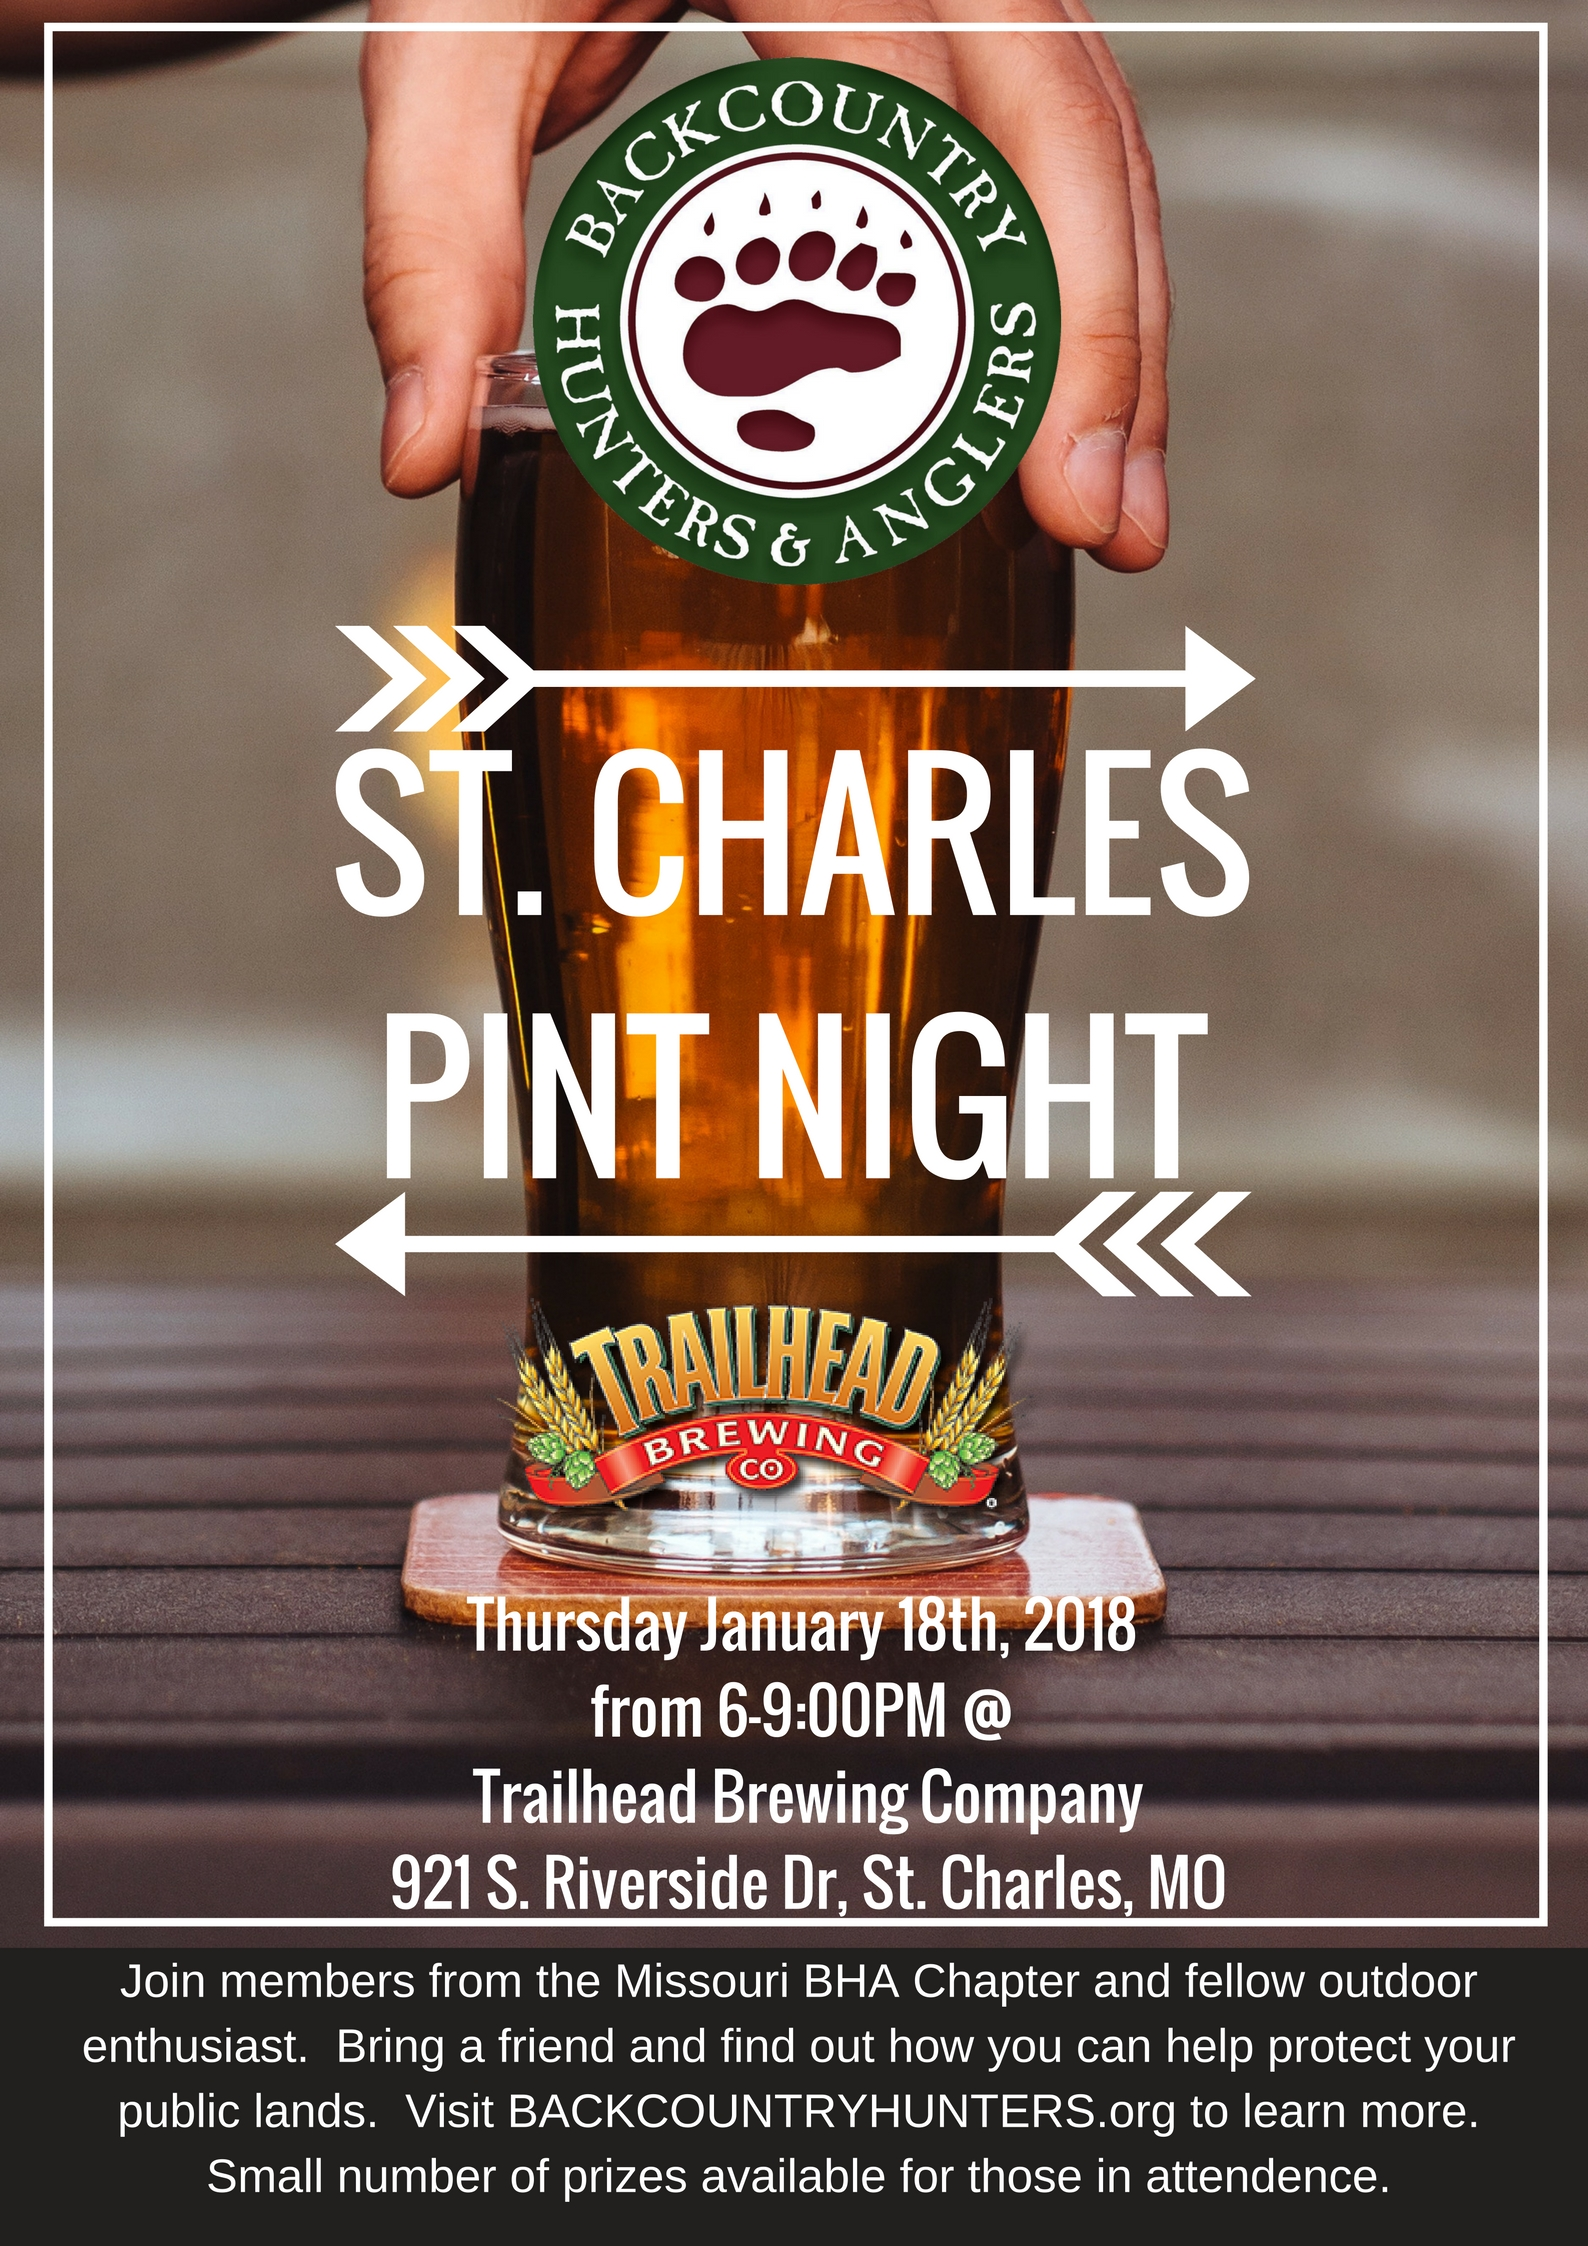 St._Charles_Pint_Night_Flyer.jpg